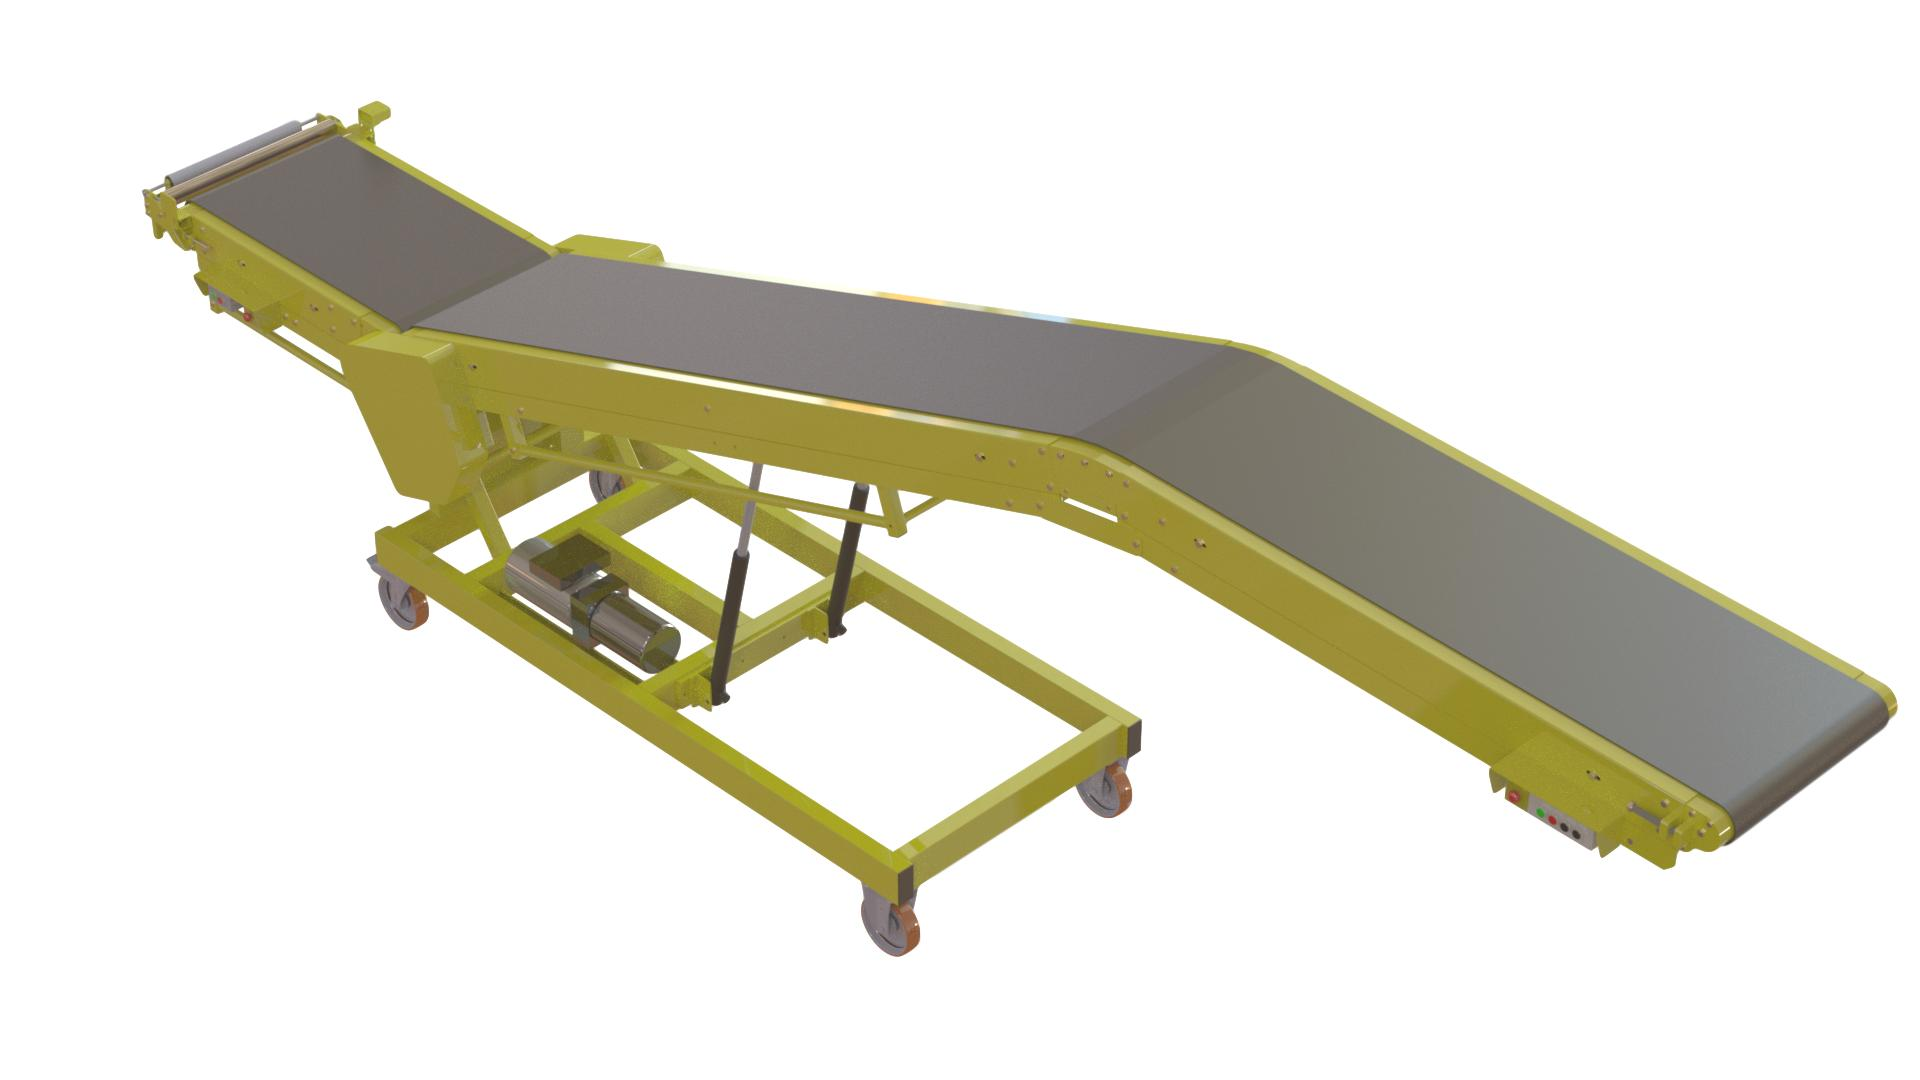 Penetrator Conveyor loading and unloading vans and trailers